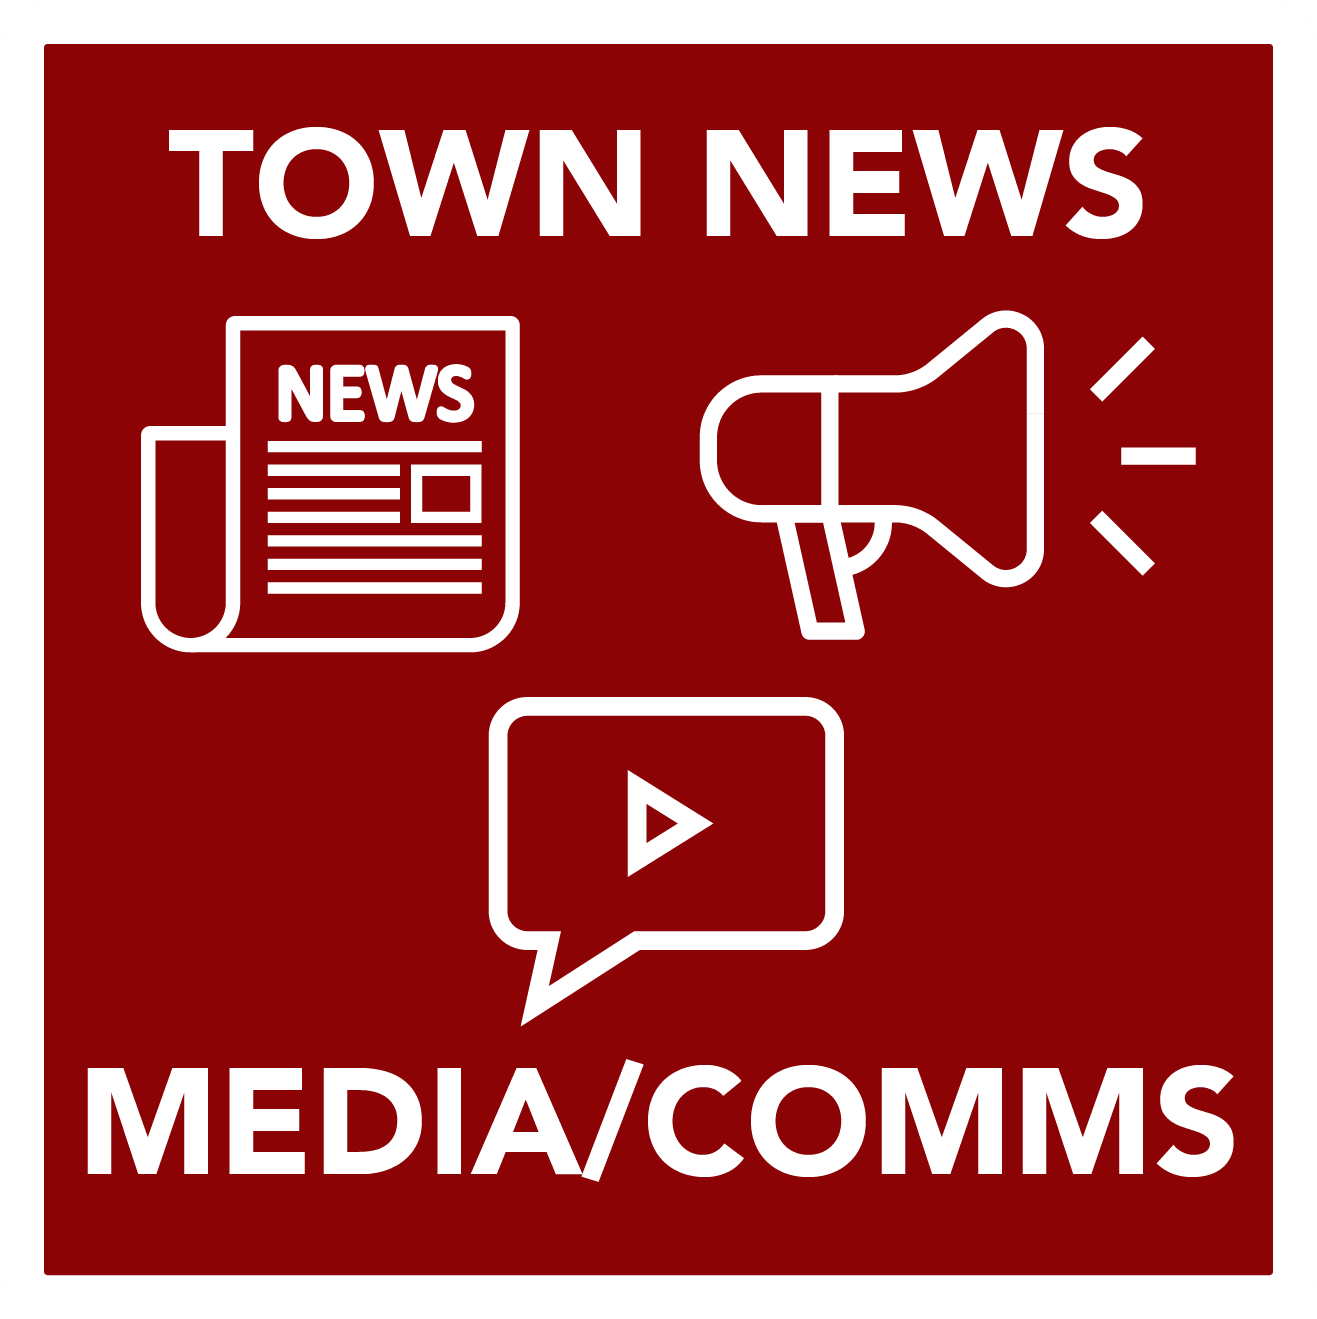 Town News - MediaComms - Button